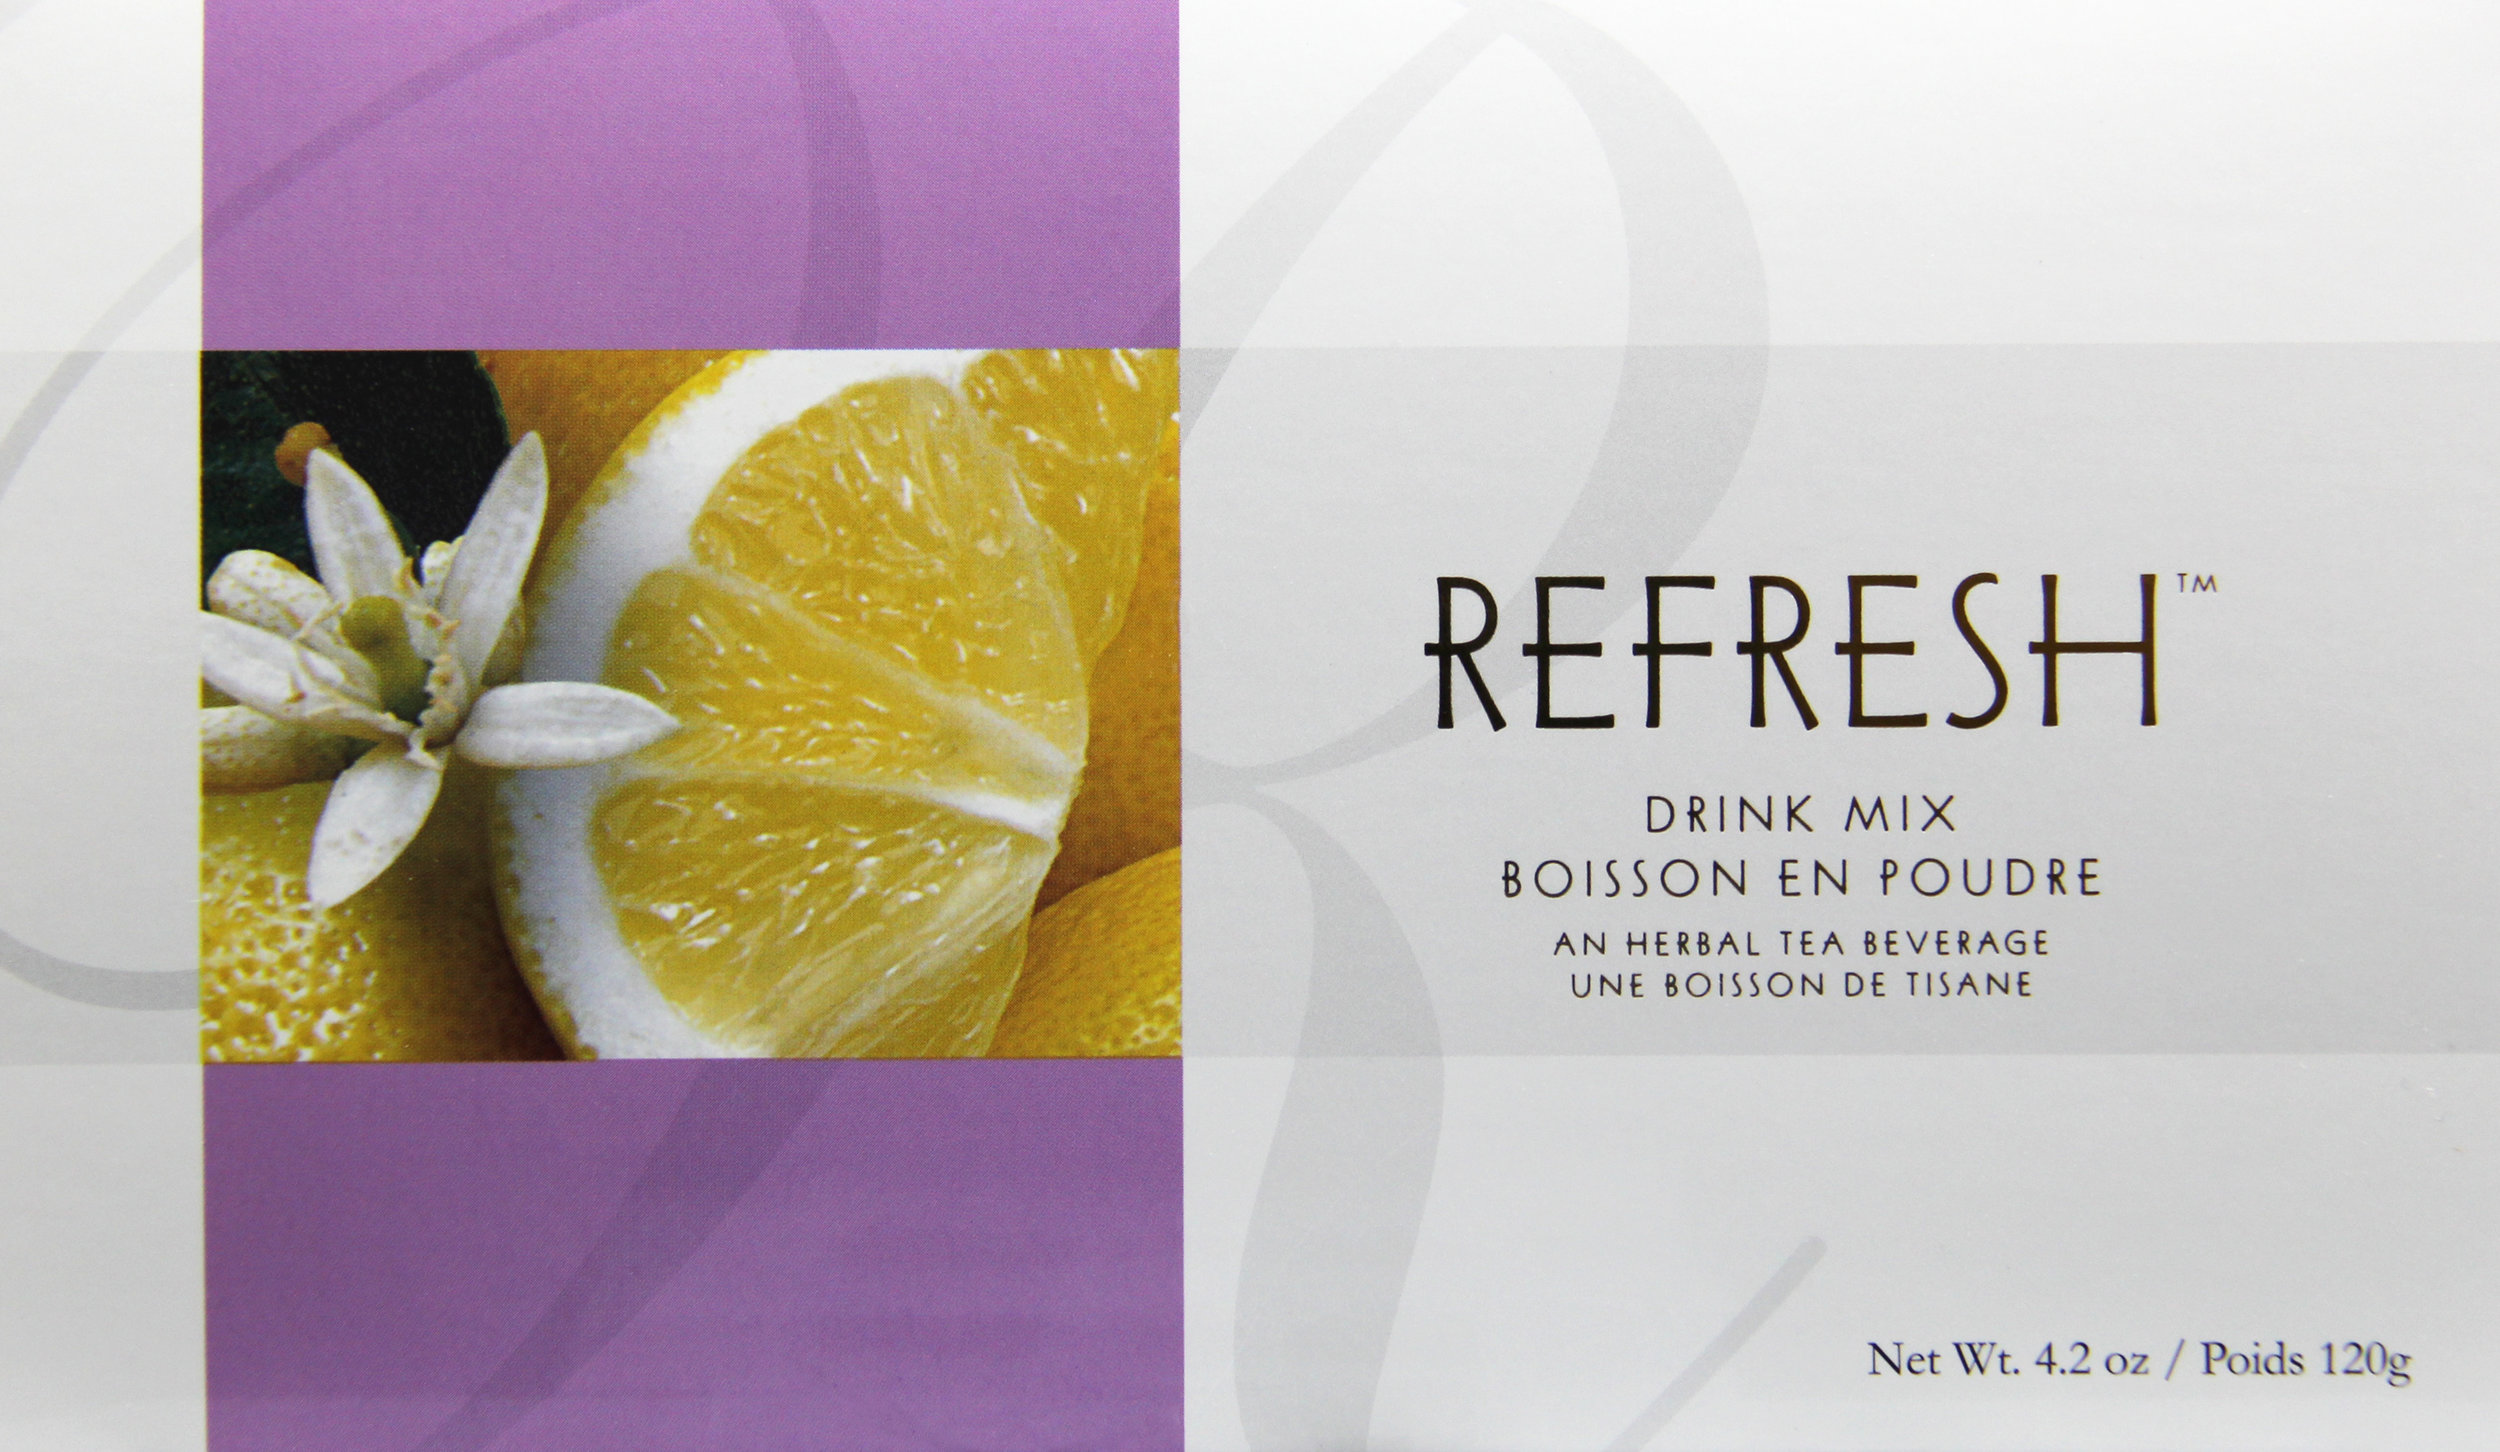 refresh - Helps to support urinary and kidney function*Featured Ingredients: Roasted Barley, Shiitake, Reishi, Noni Fruit